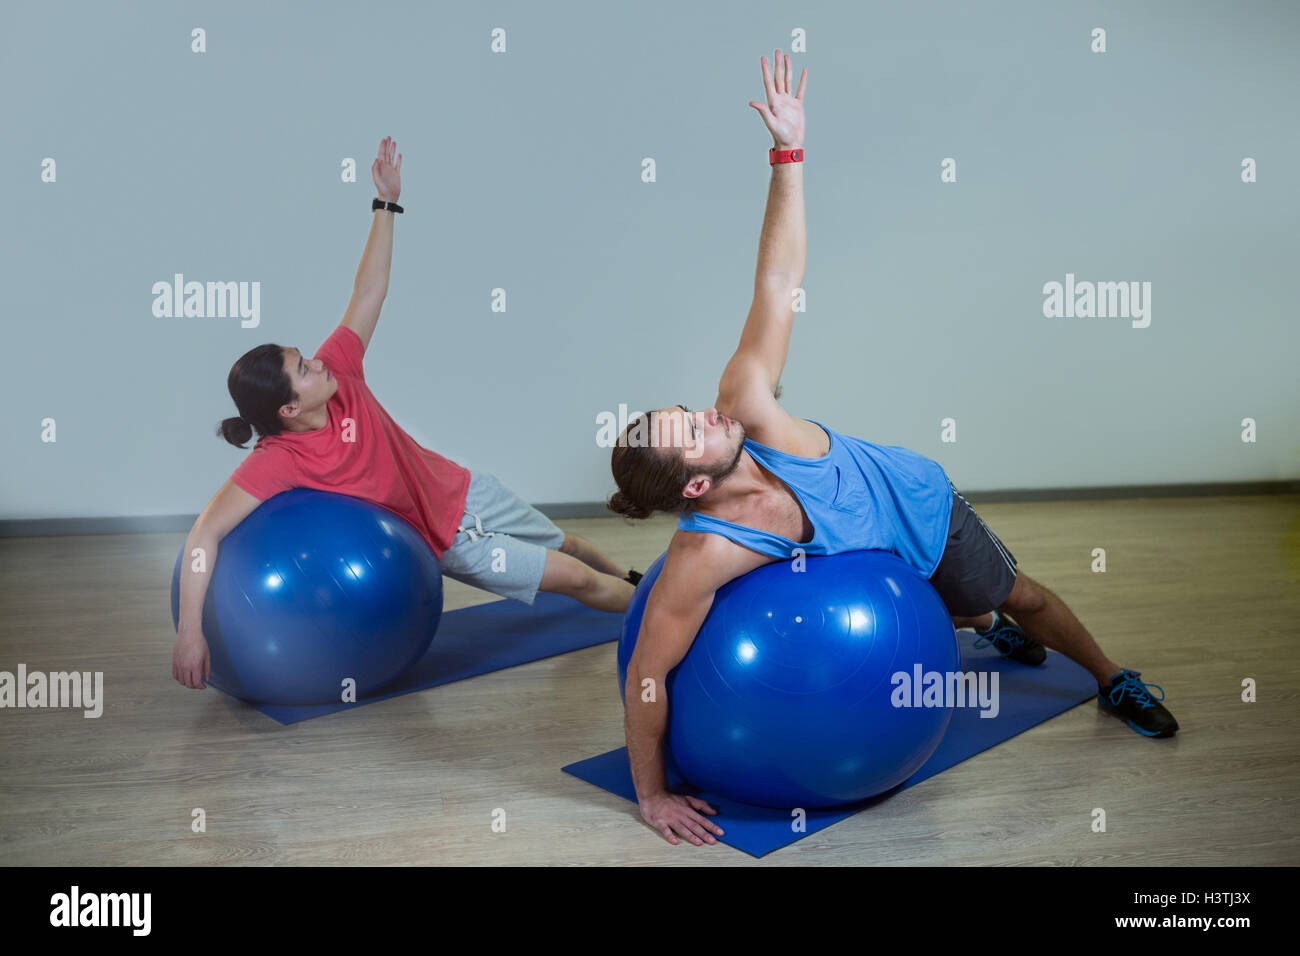 Men exercising with exercise ball - Stock Image